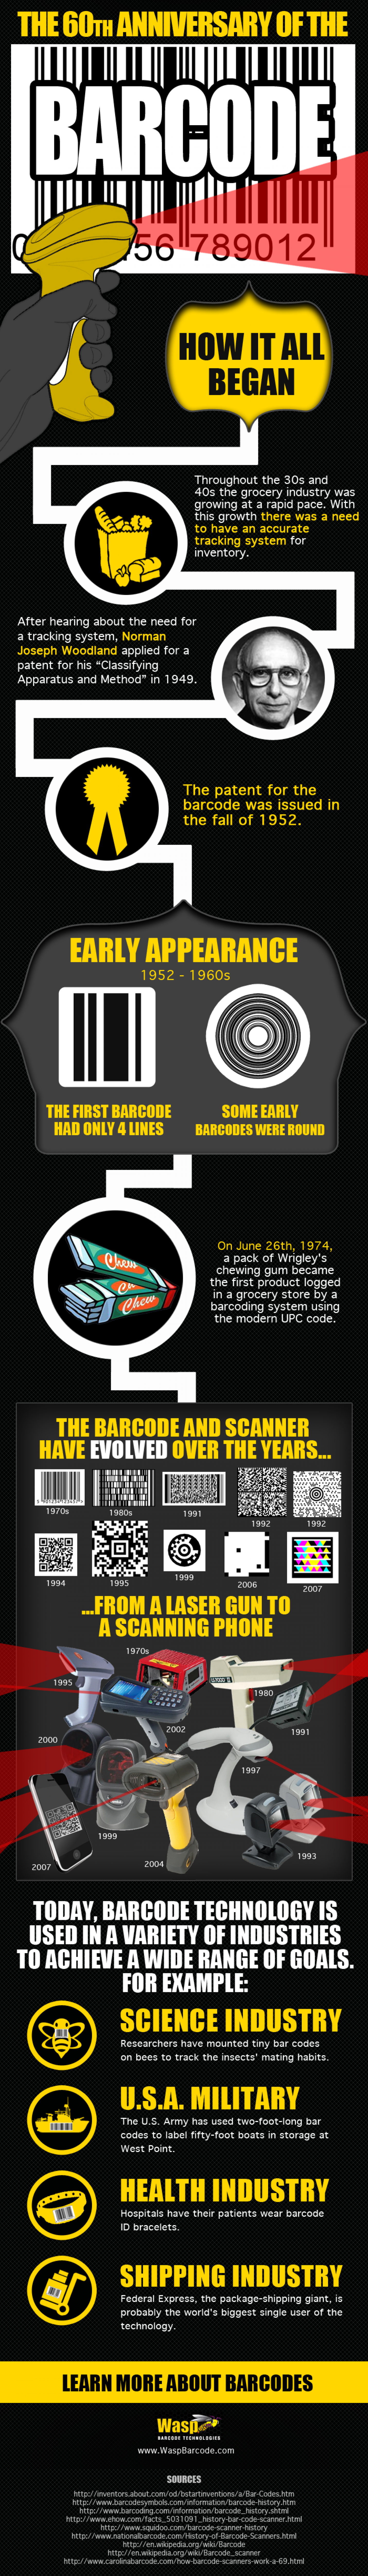 60th Anniversary of the Barcode Infographic